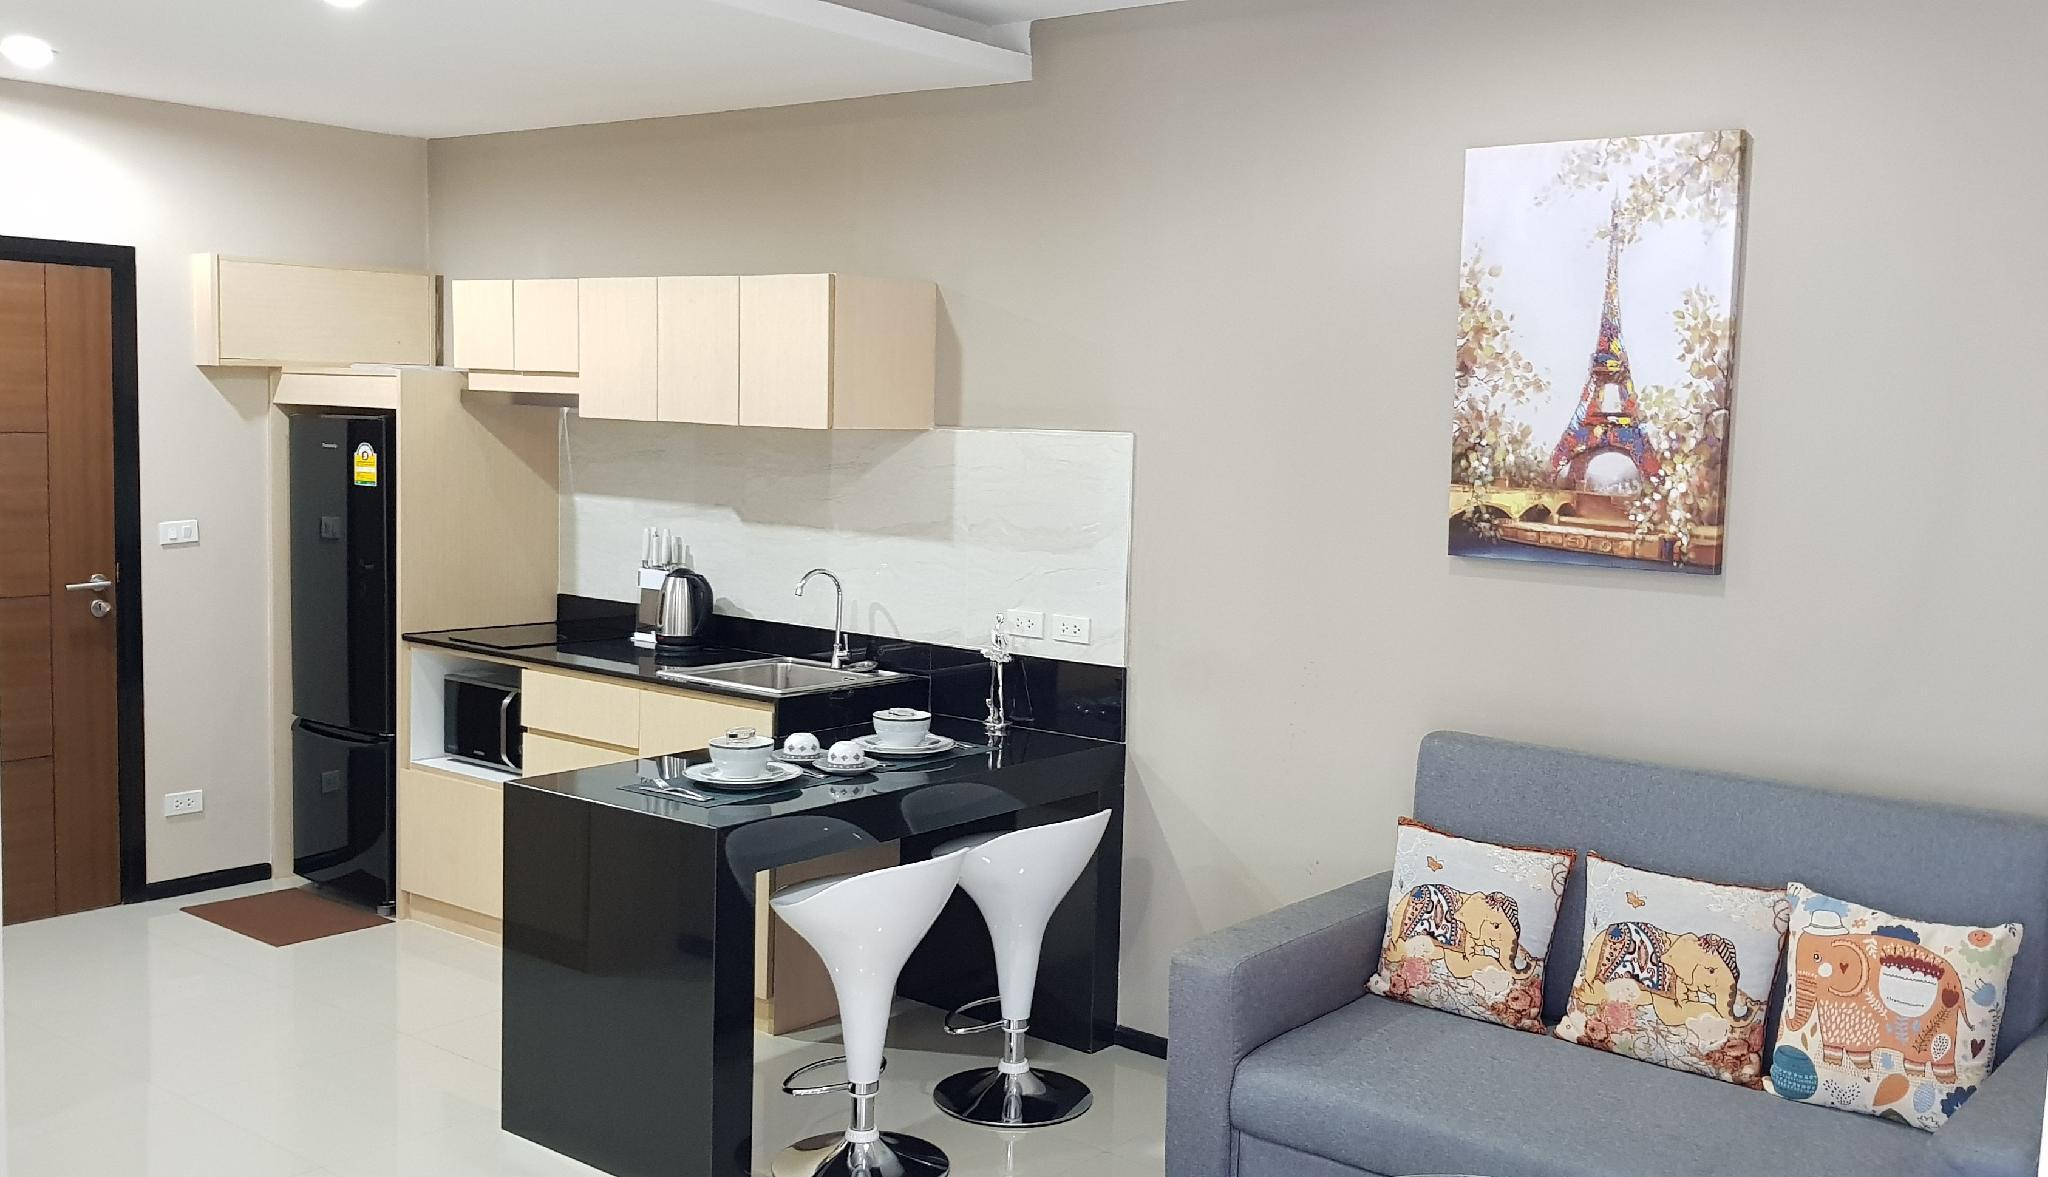 1bd with kitchen, Nai Harn Beach (50 sqm, 2018) 1bd with kitchen, Nai Harn Beach (50 sqm, 2018)